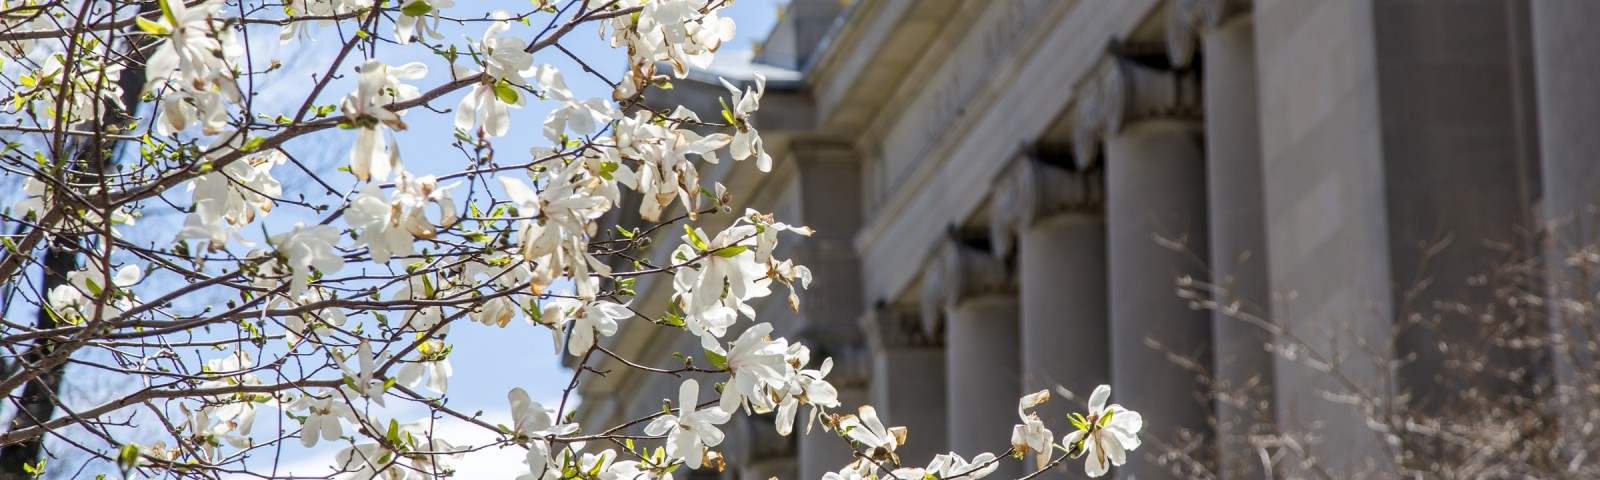 Flowers blooming on a tree on campus